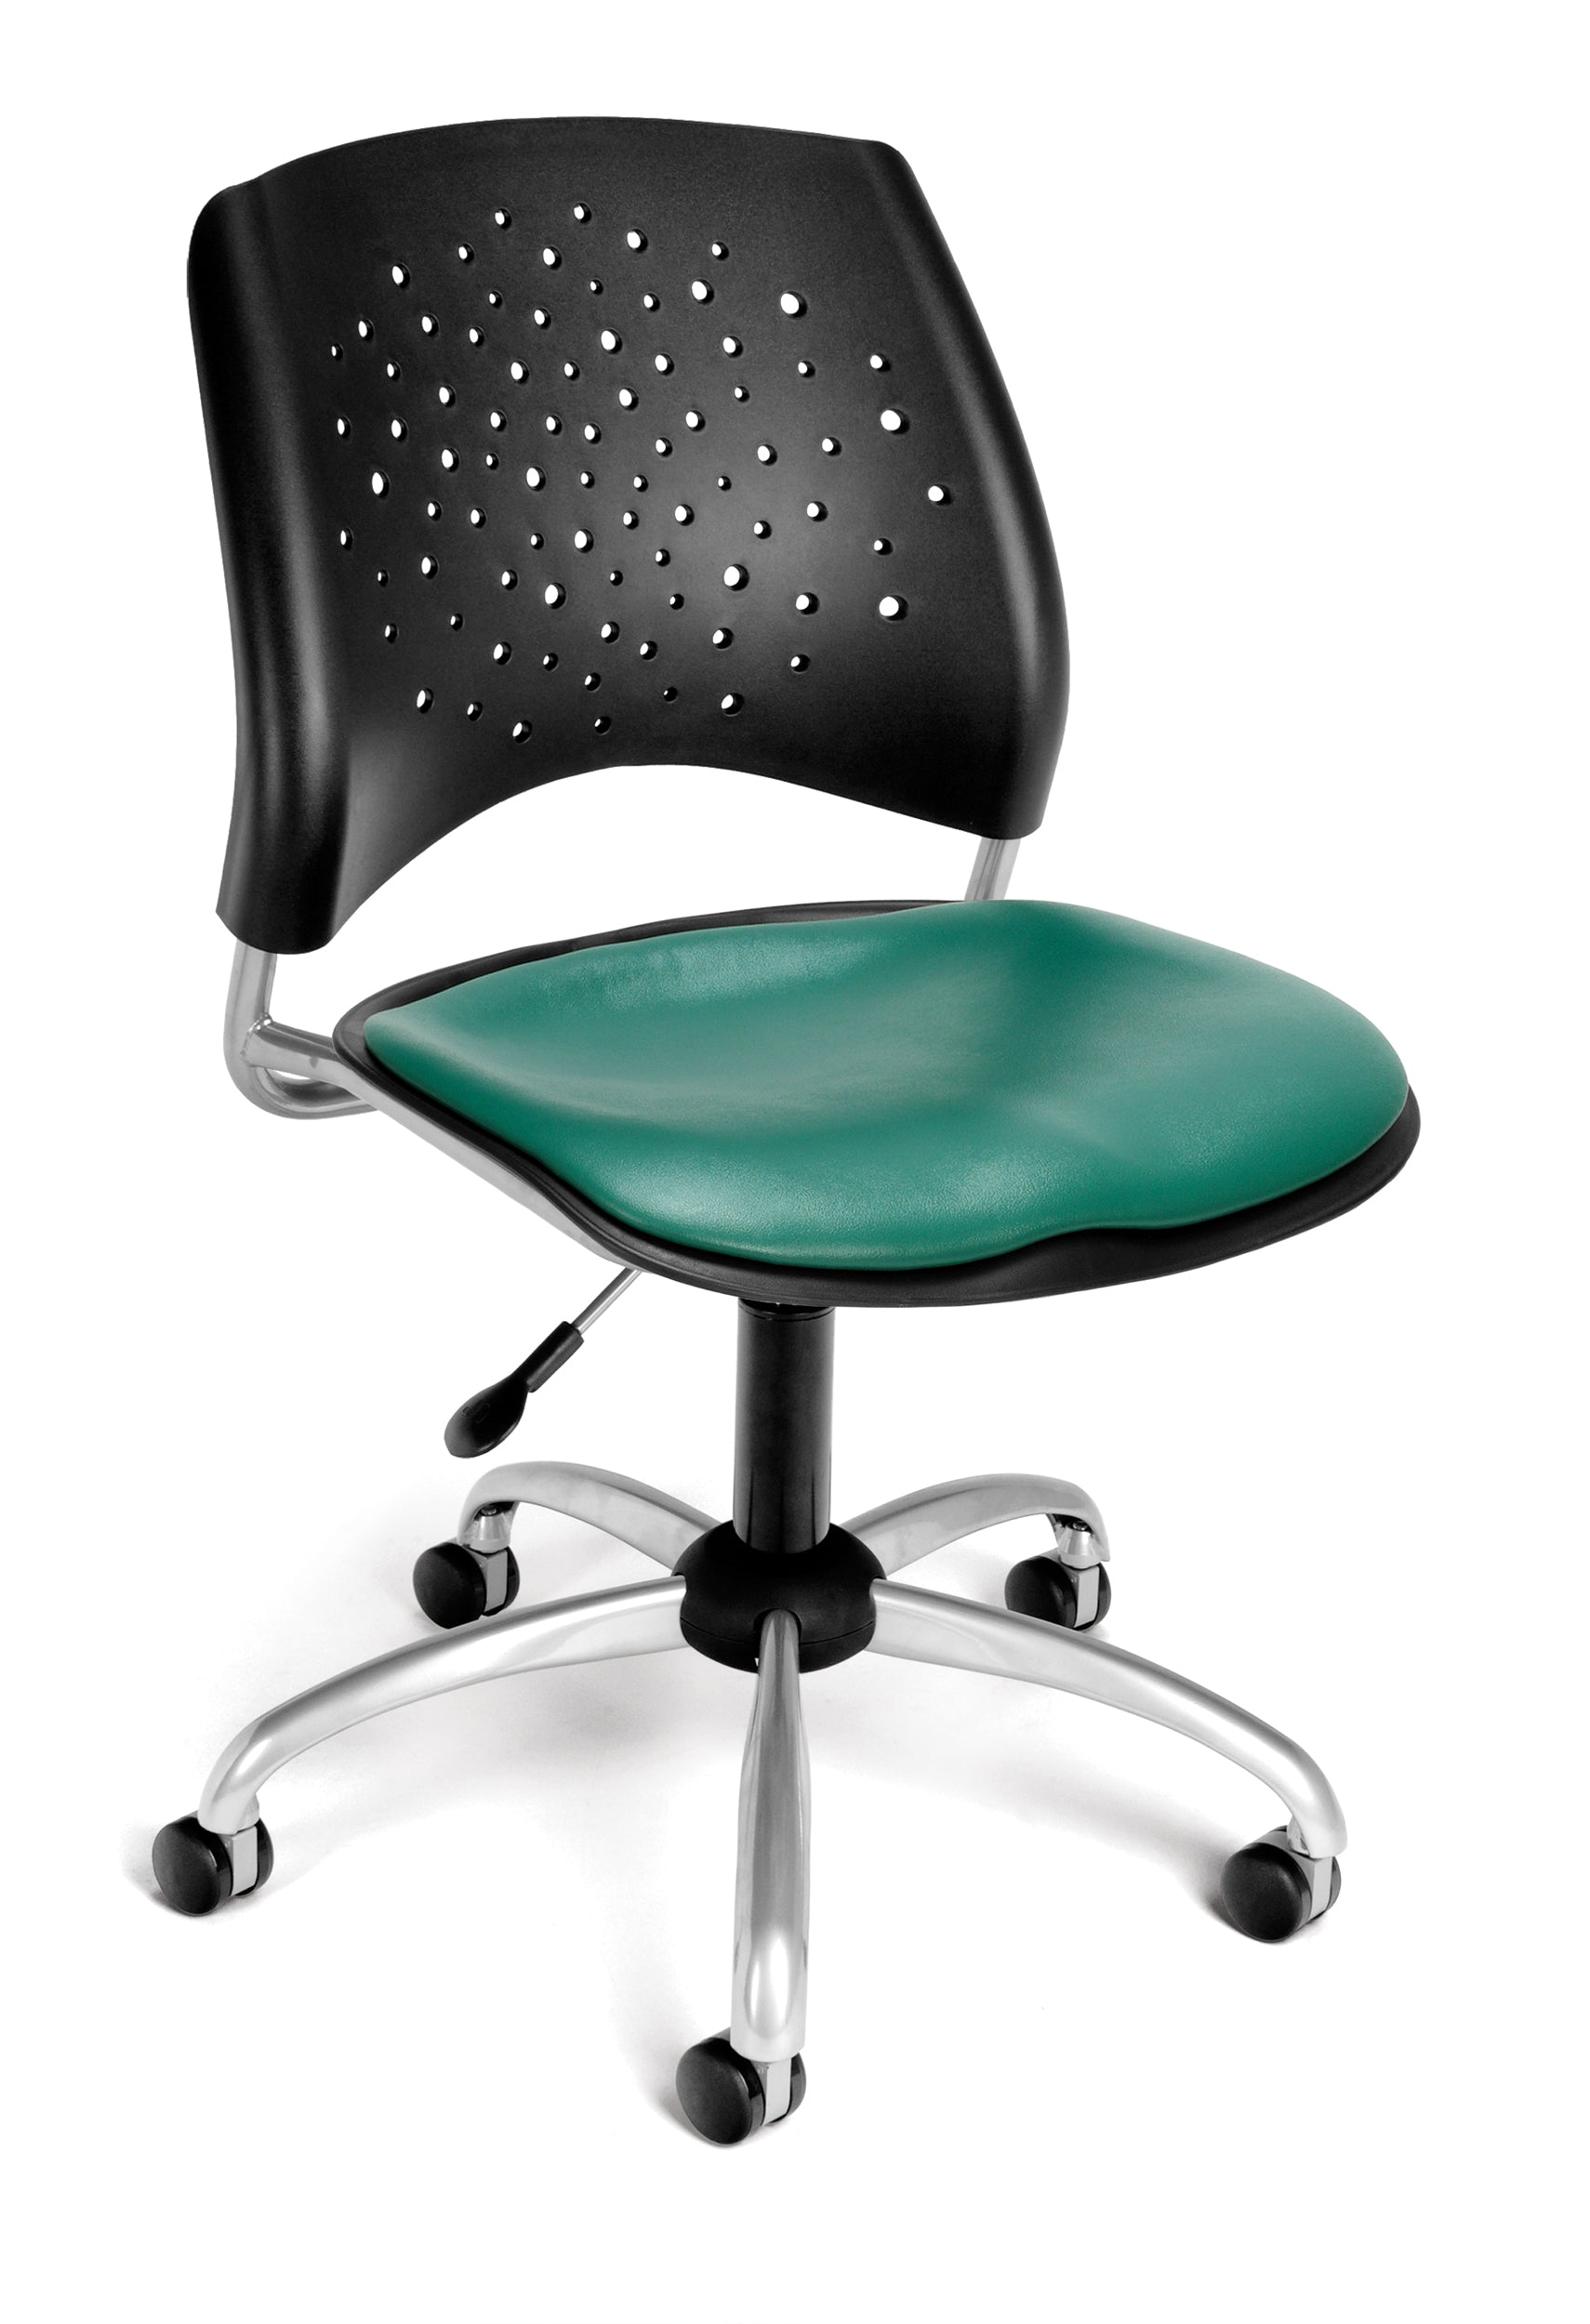 Ofminc Model 326-VAM Stars Series Armless Vinyl Swivel Chair